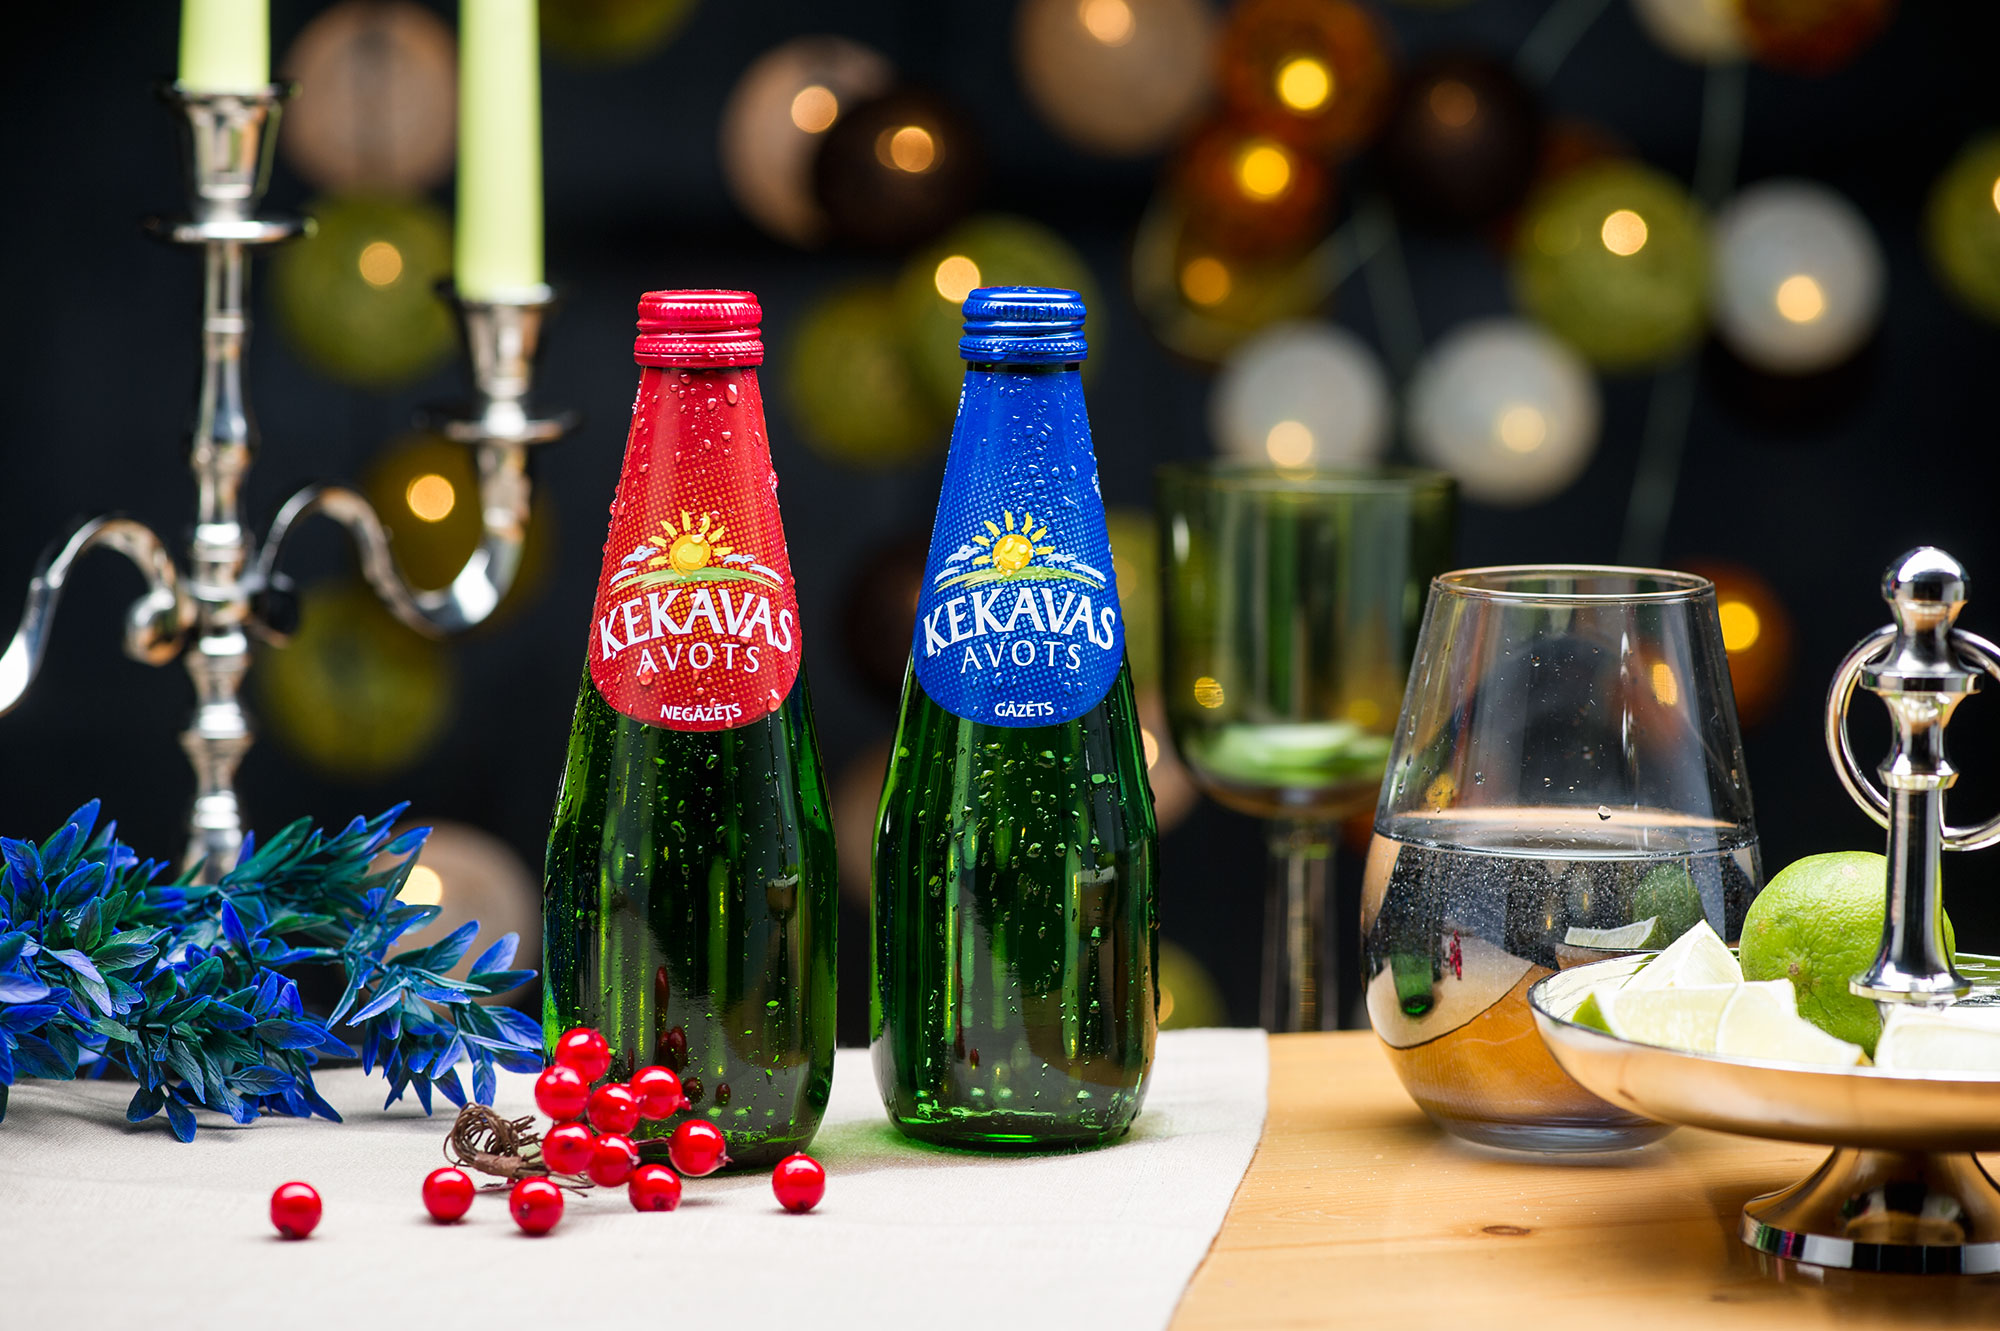 Products that are branded Kekavas Avots